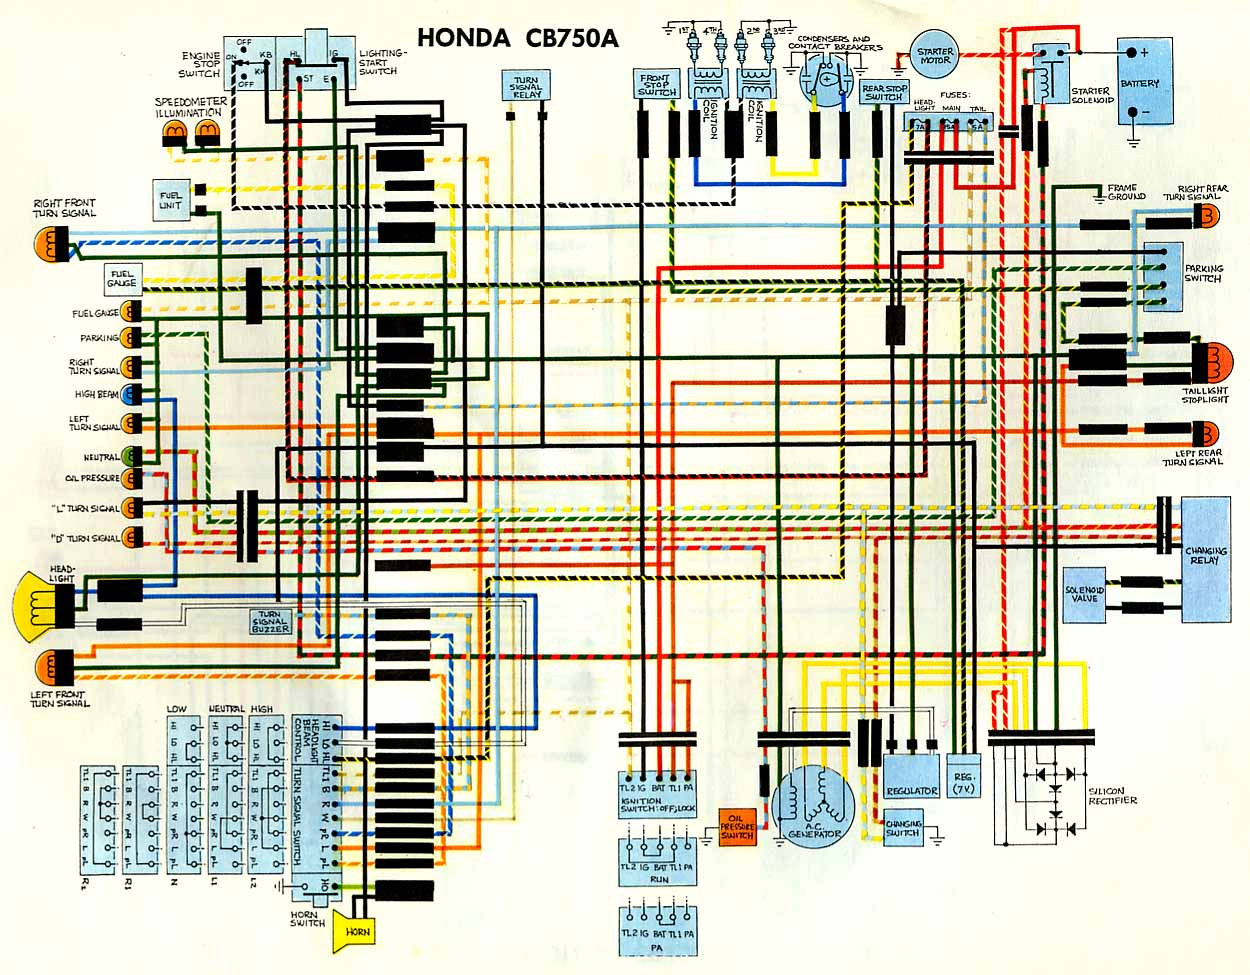 Honda_CB750A_Hondamatic_Wiring_Diagram 2010 april evan fell motorcycle worksevan fell motorcycle works 1984 honda vt700c wiring diagram at bayanpartner.co